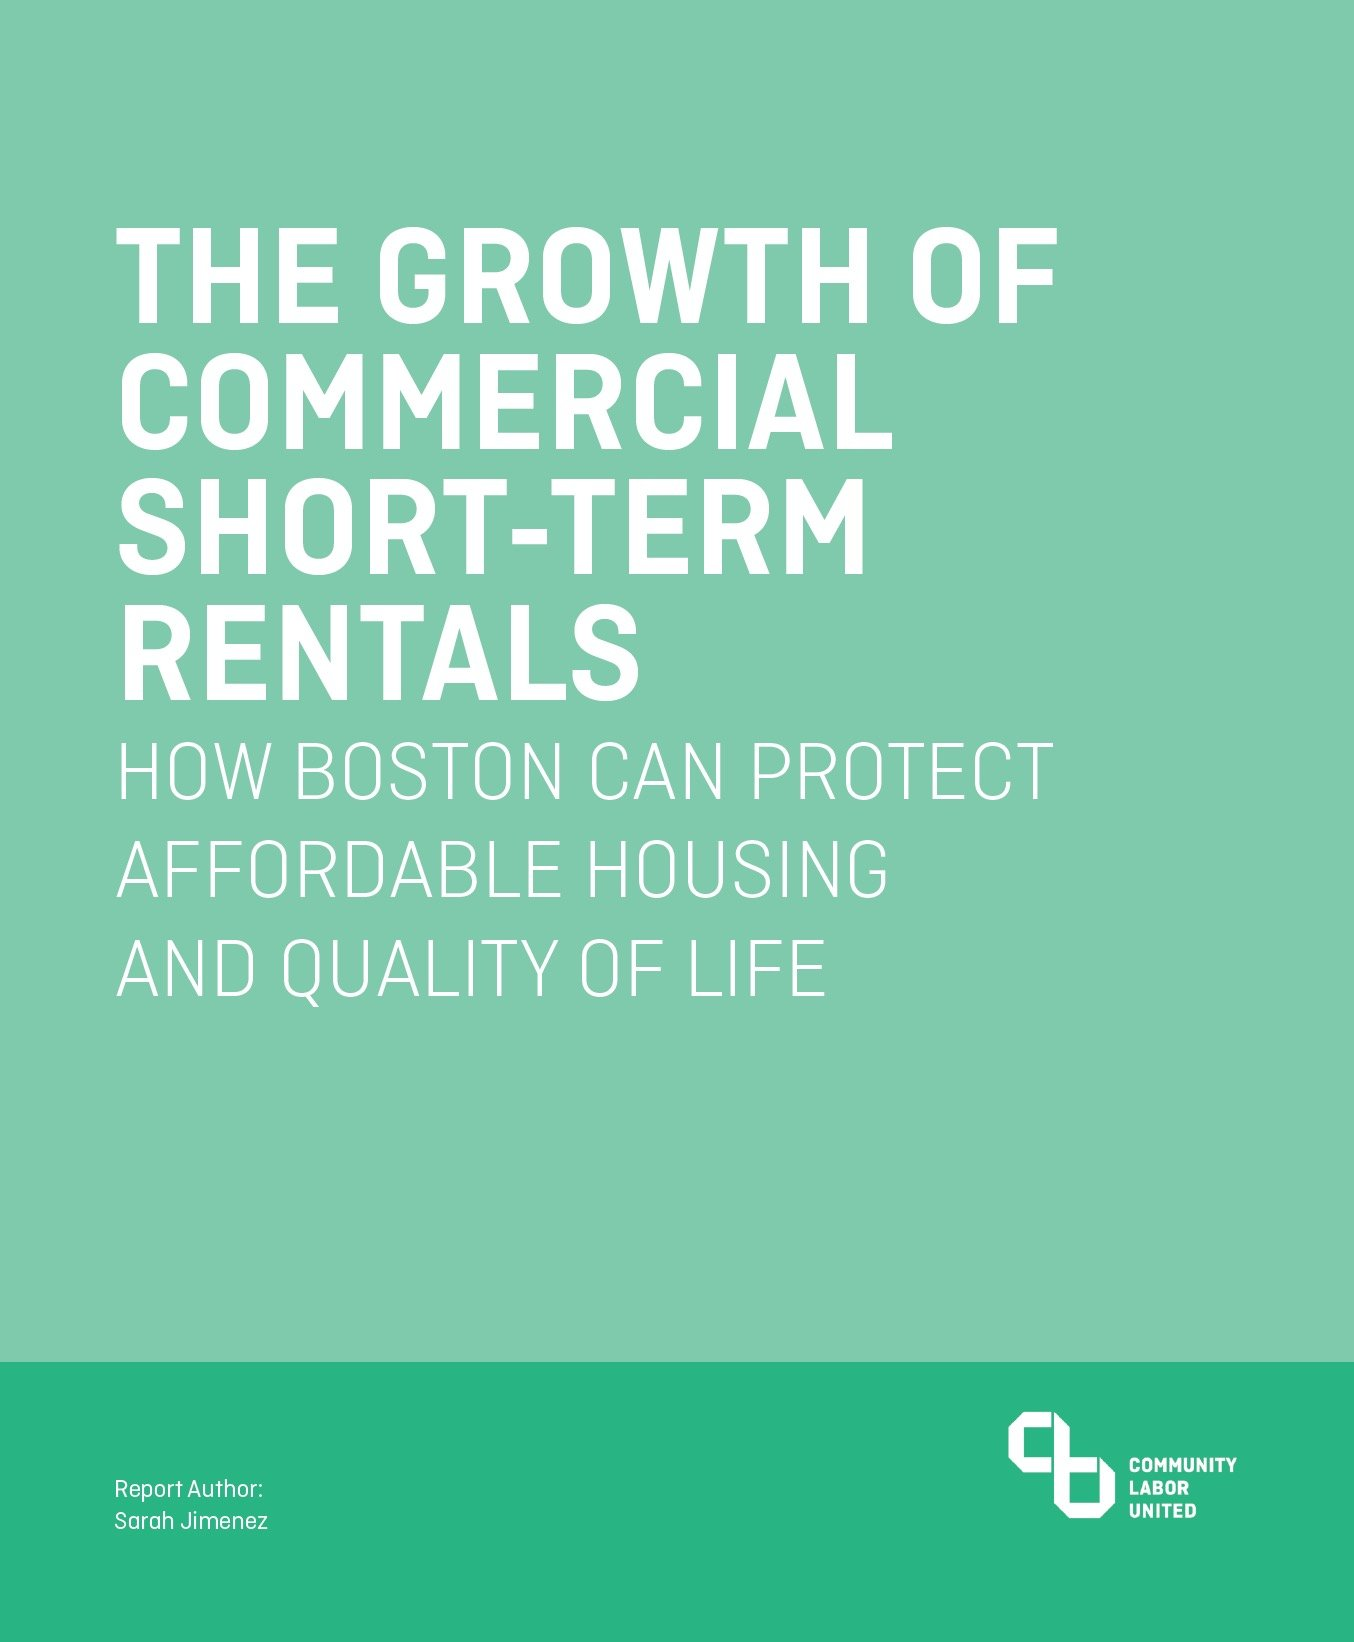 THE GROWTH OF COMMERCIAL SHORT-TERM RENTALS